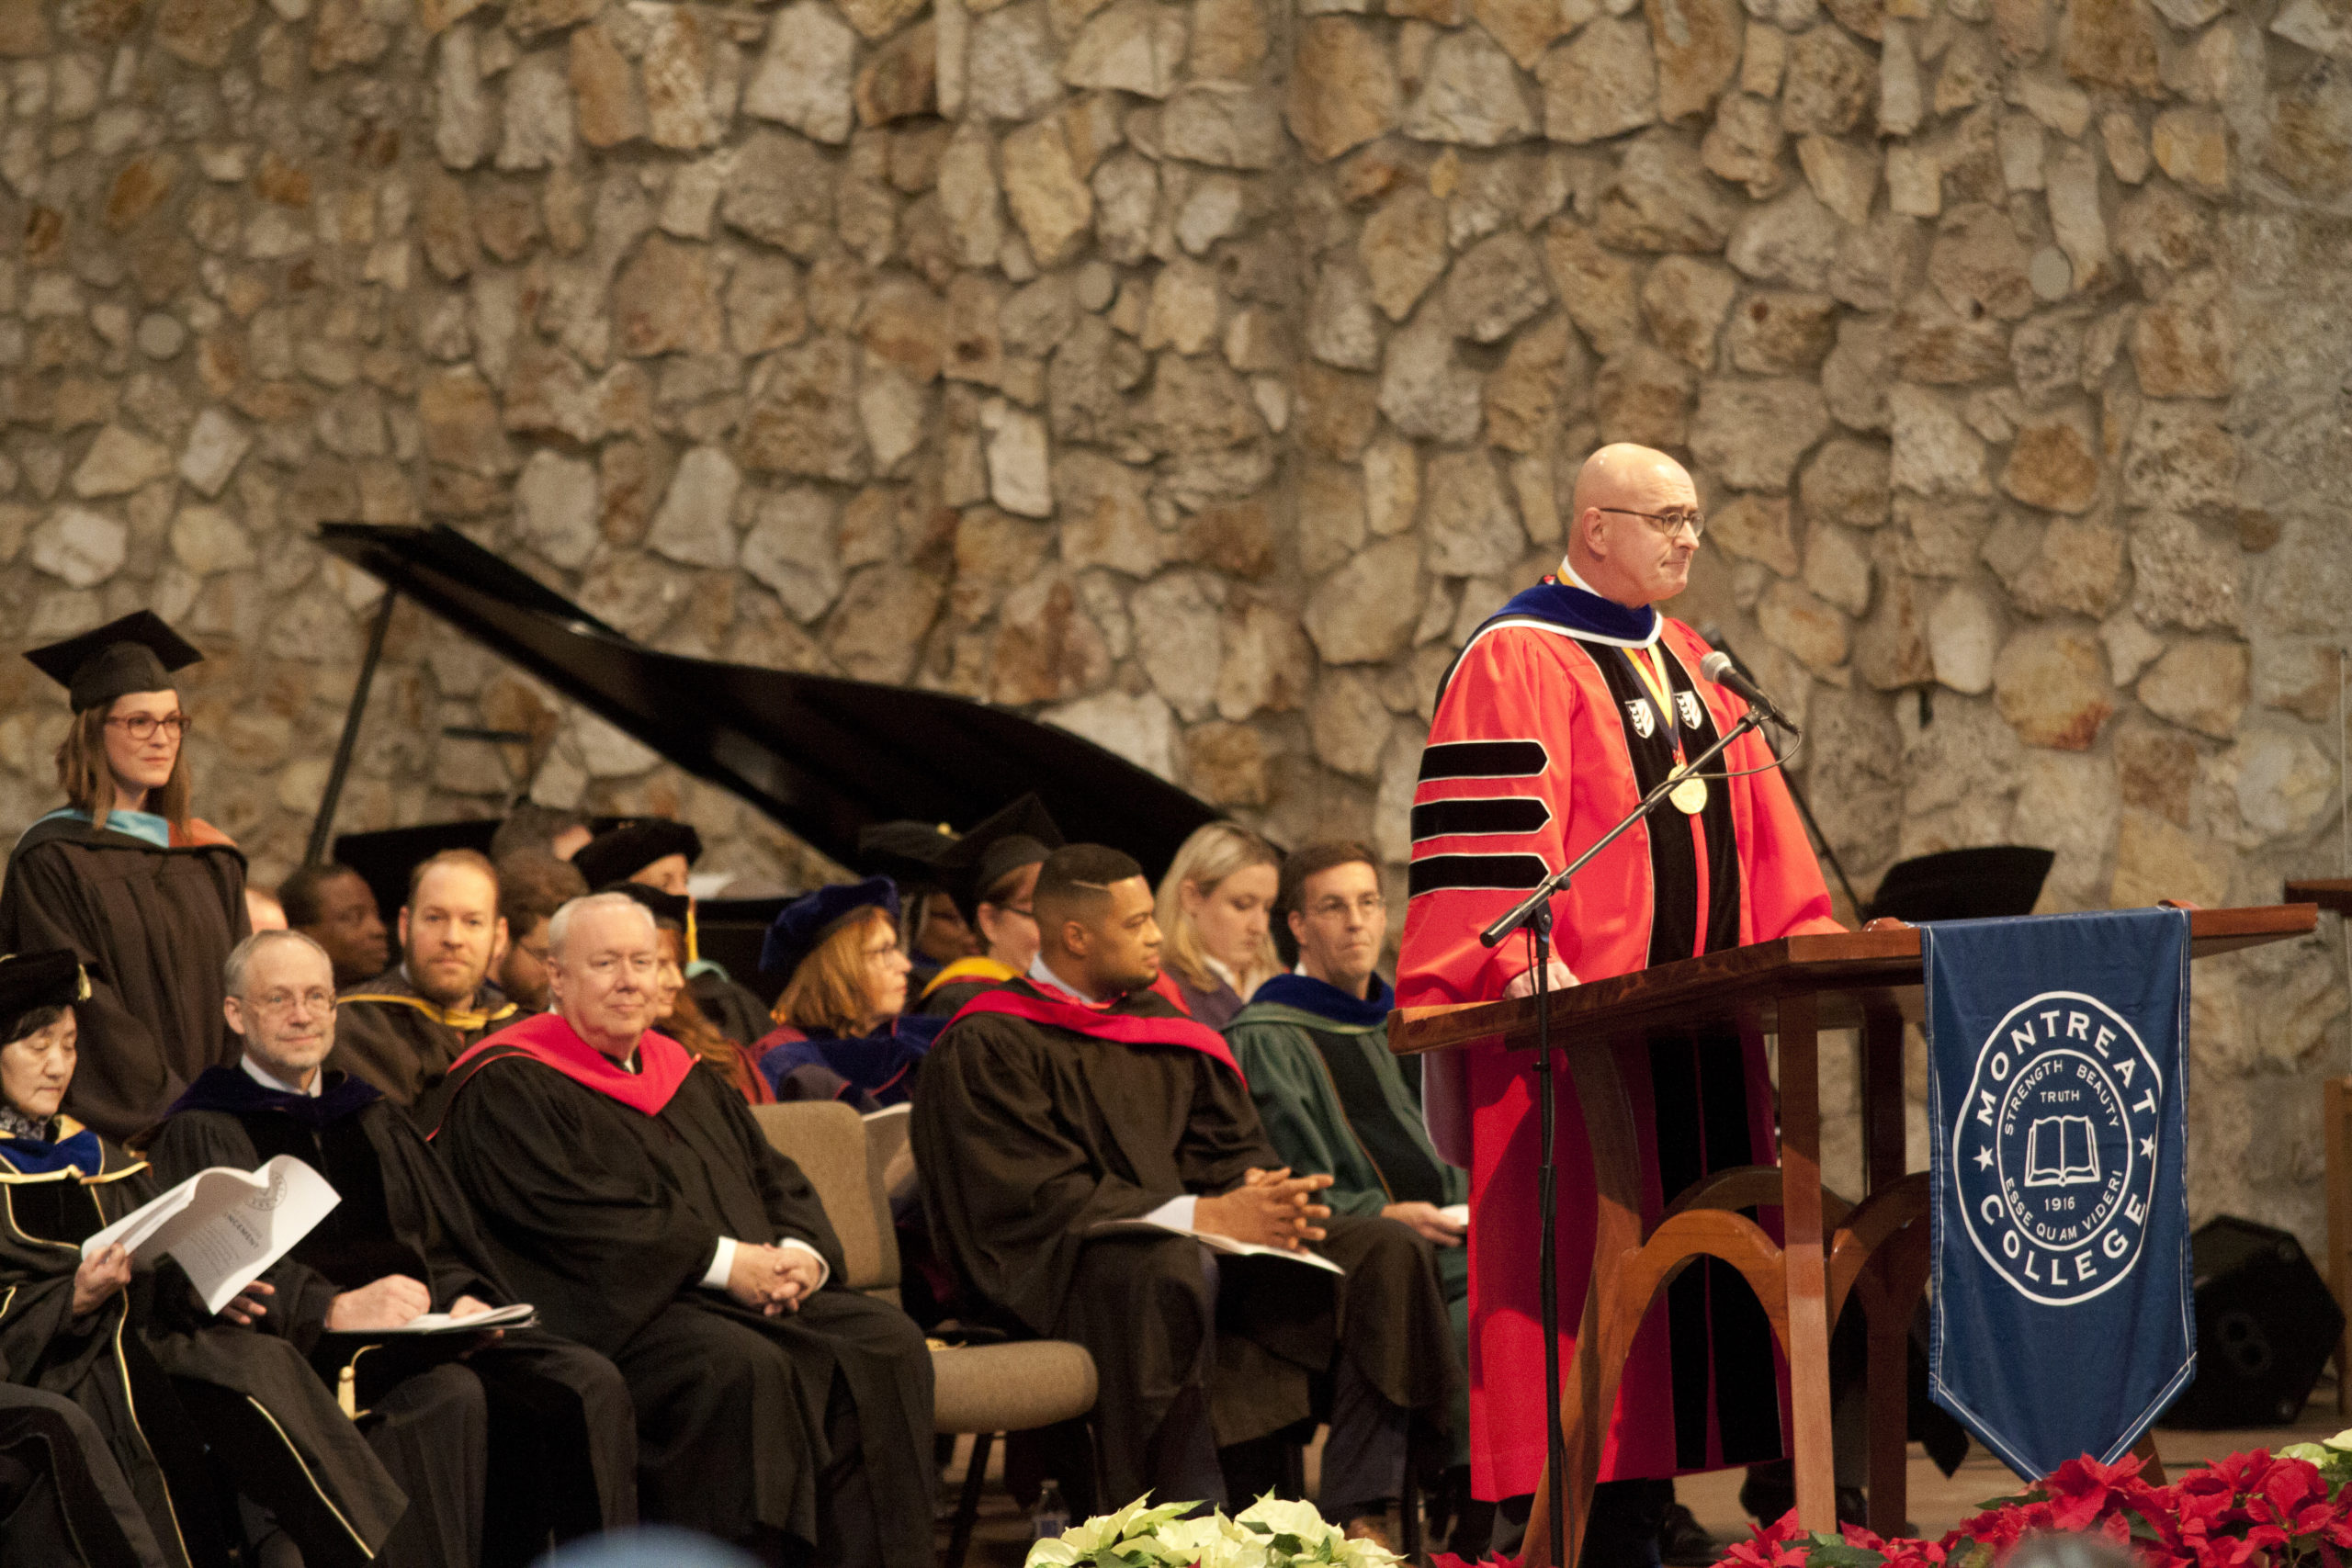 Photo of President Maurer standing at a podium with faculty seated behind him